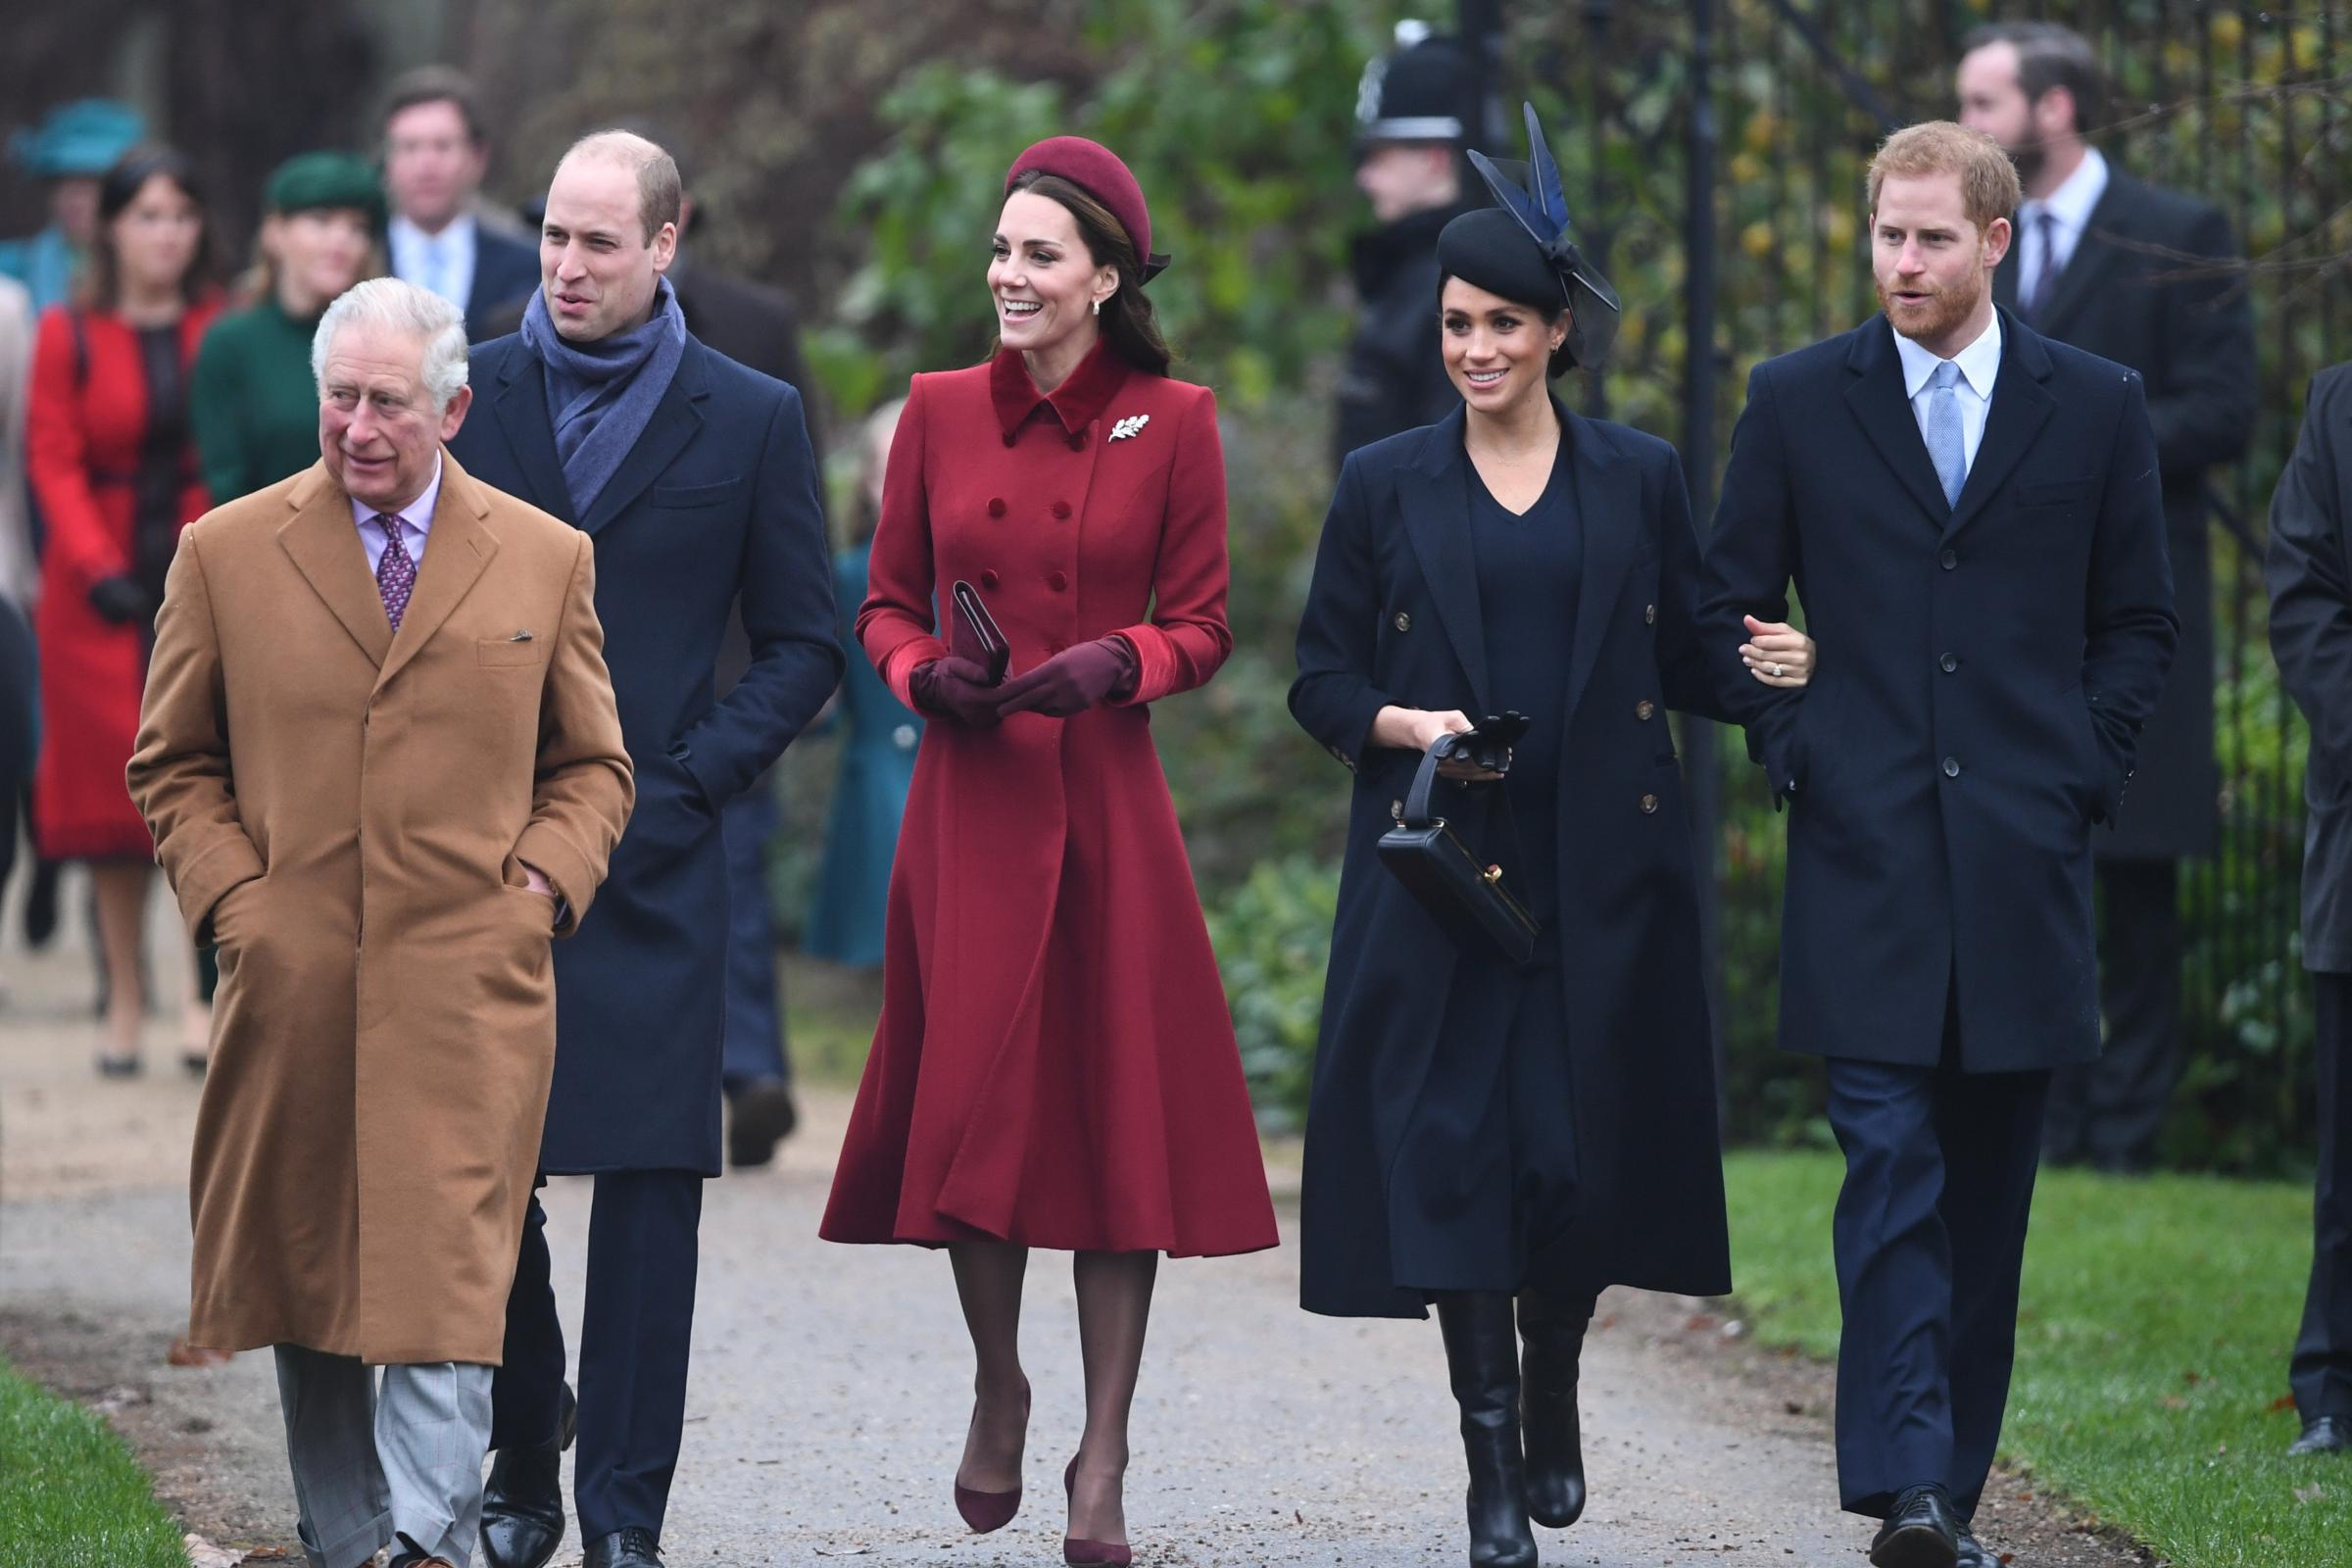 The Prince of Wales, the Duke and Duchess of Cambridge and the Duke and Duchess of Sussex attended church together in Sandringham, Norfolk, on Christmas Day (Joe Giddens/PA)